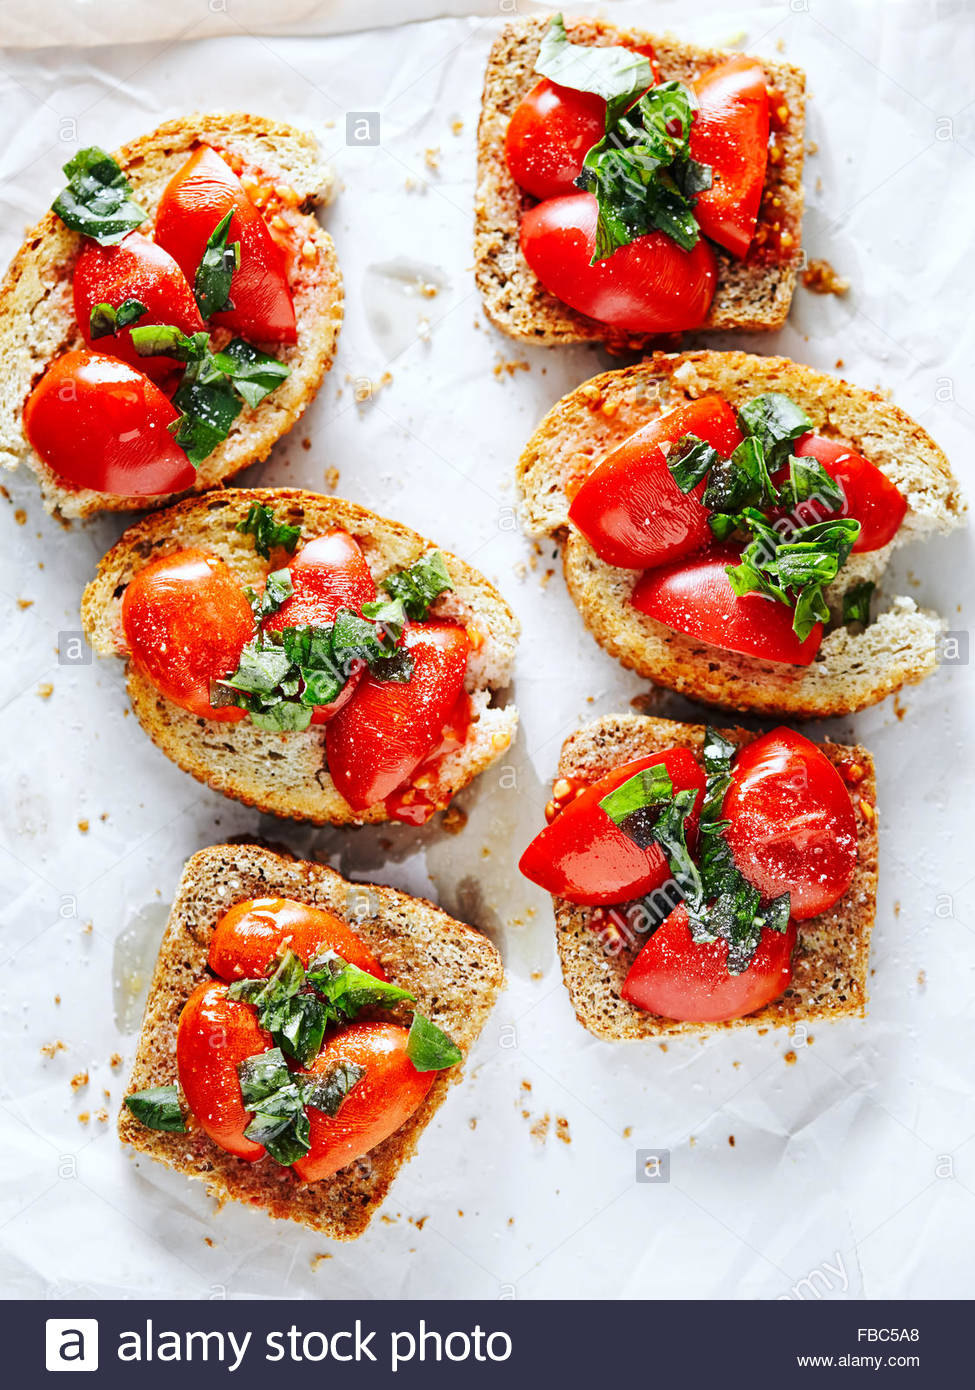 Six bruschettas with tomatoes and herbs on baking paper - Stock Image